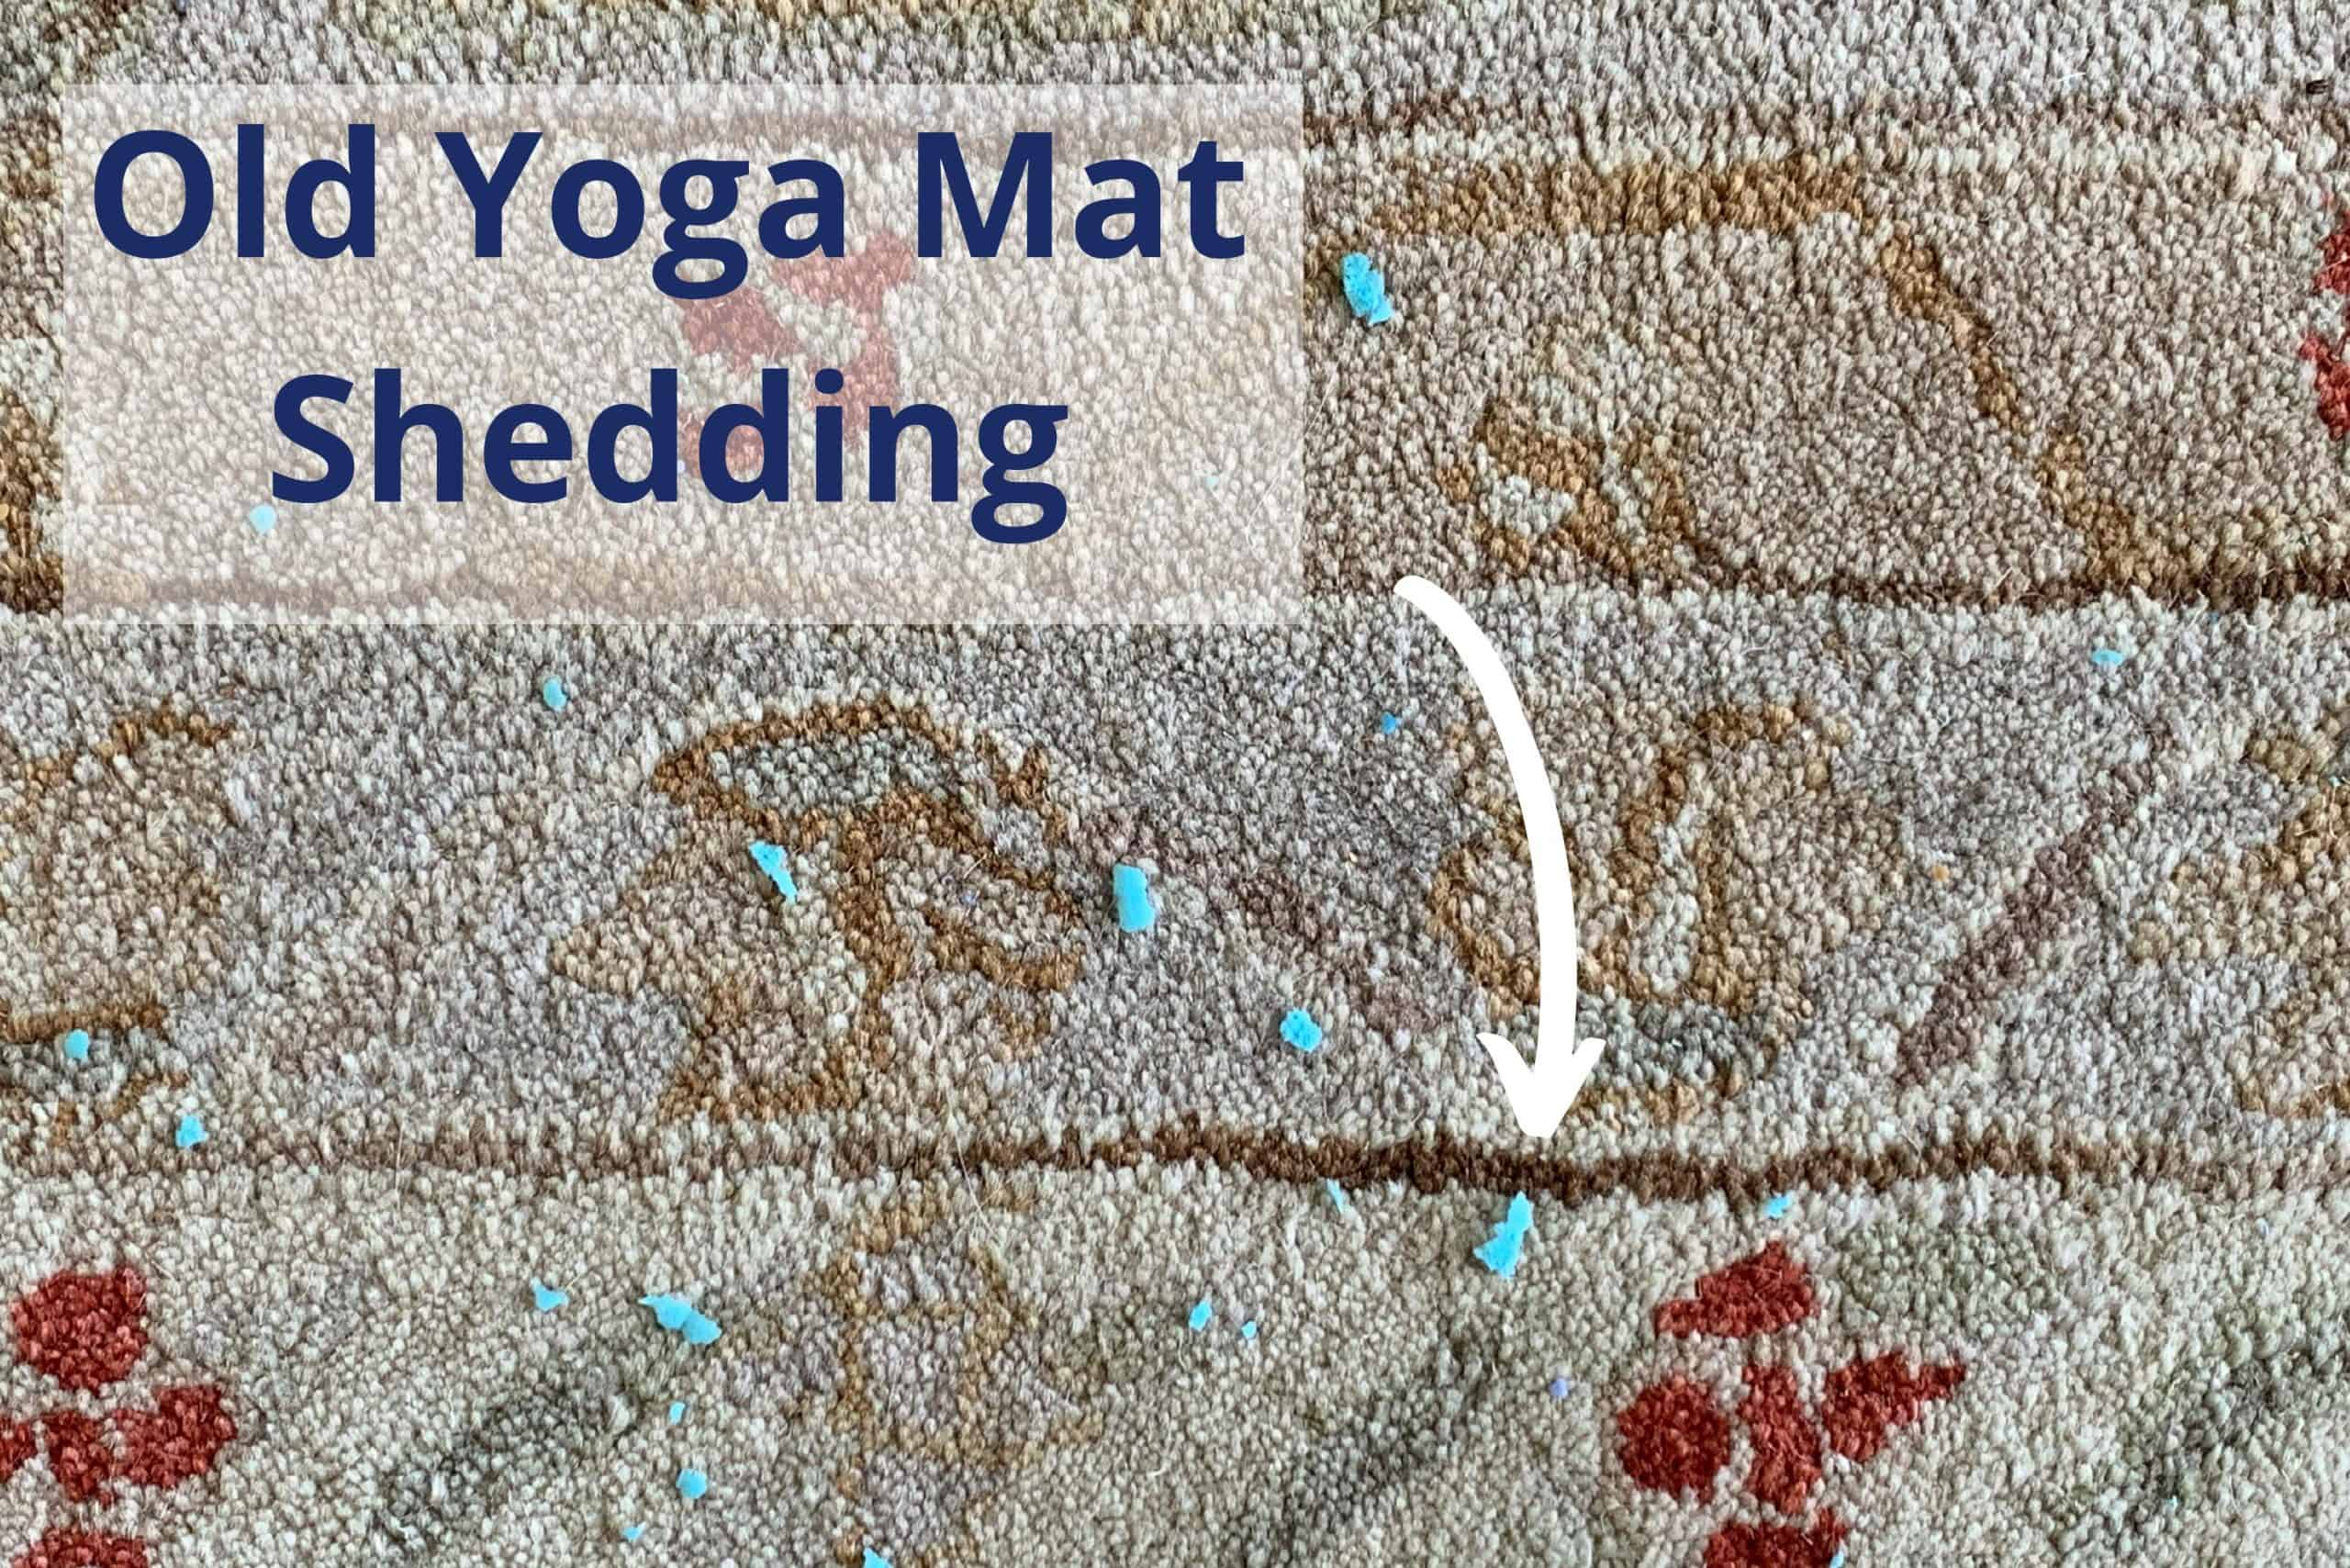 Old Yoga Mat Shedding